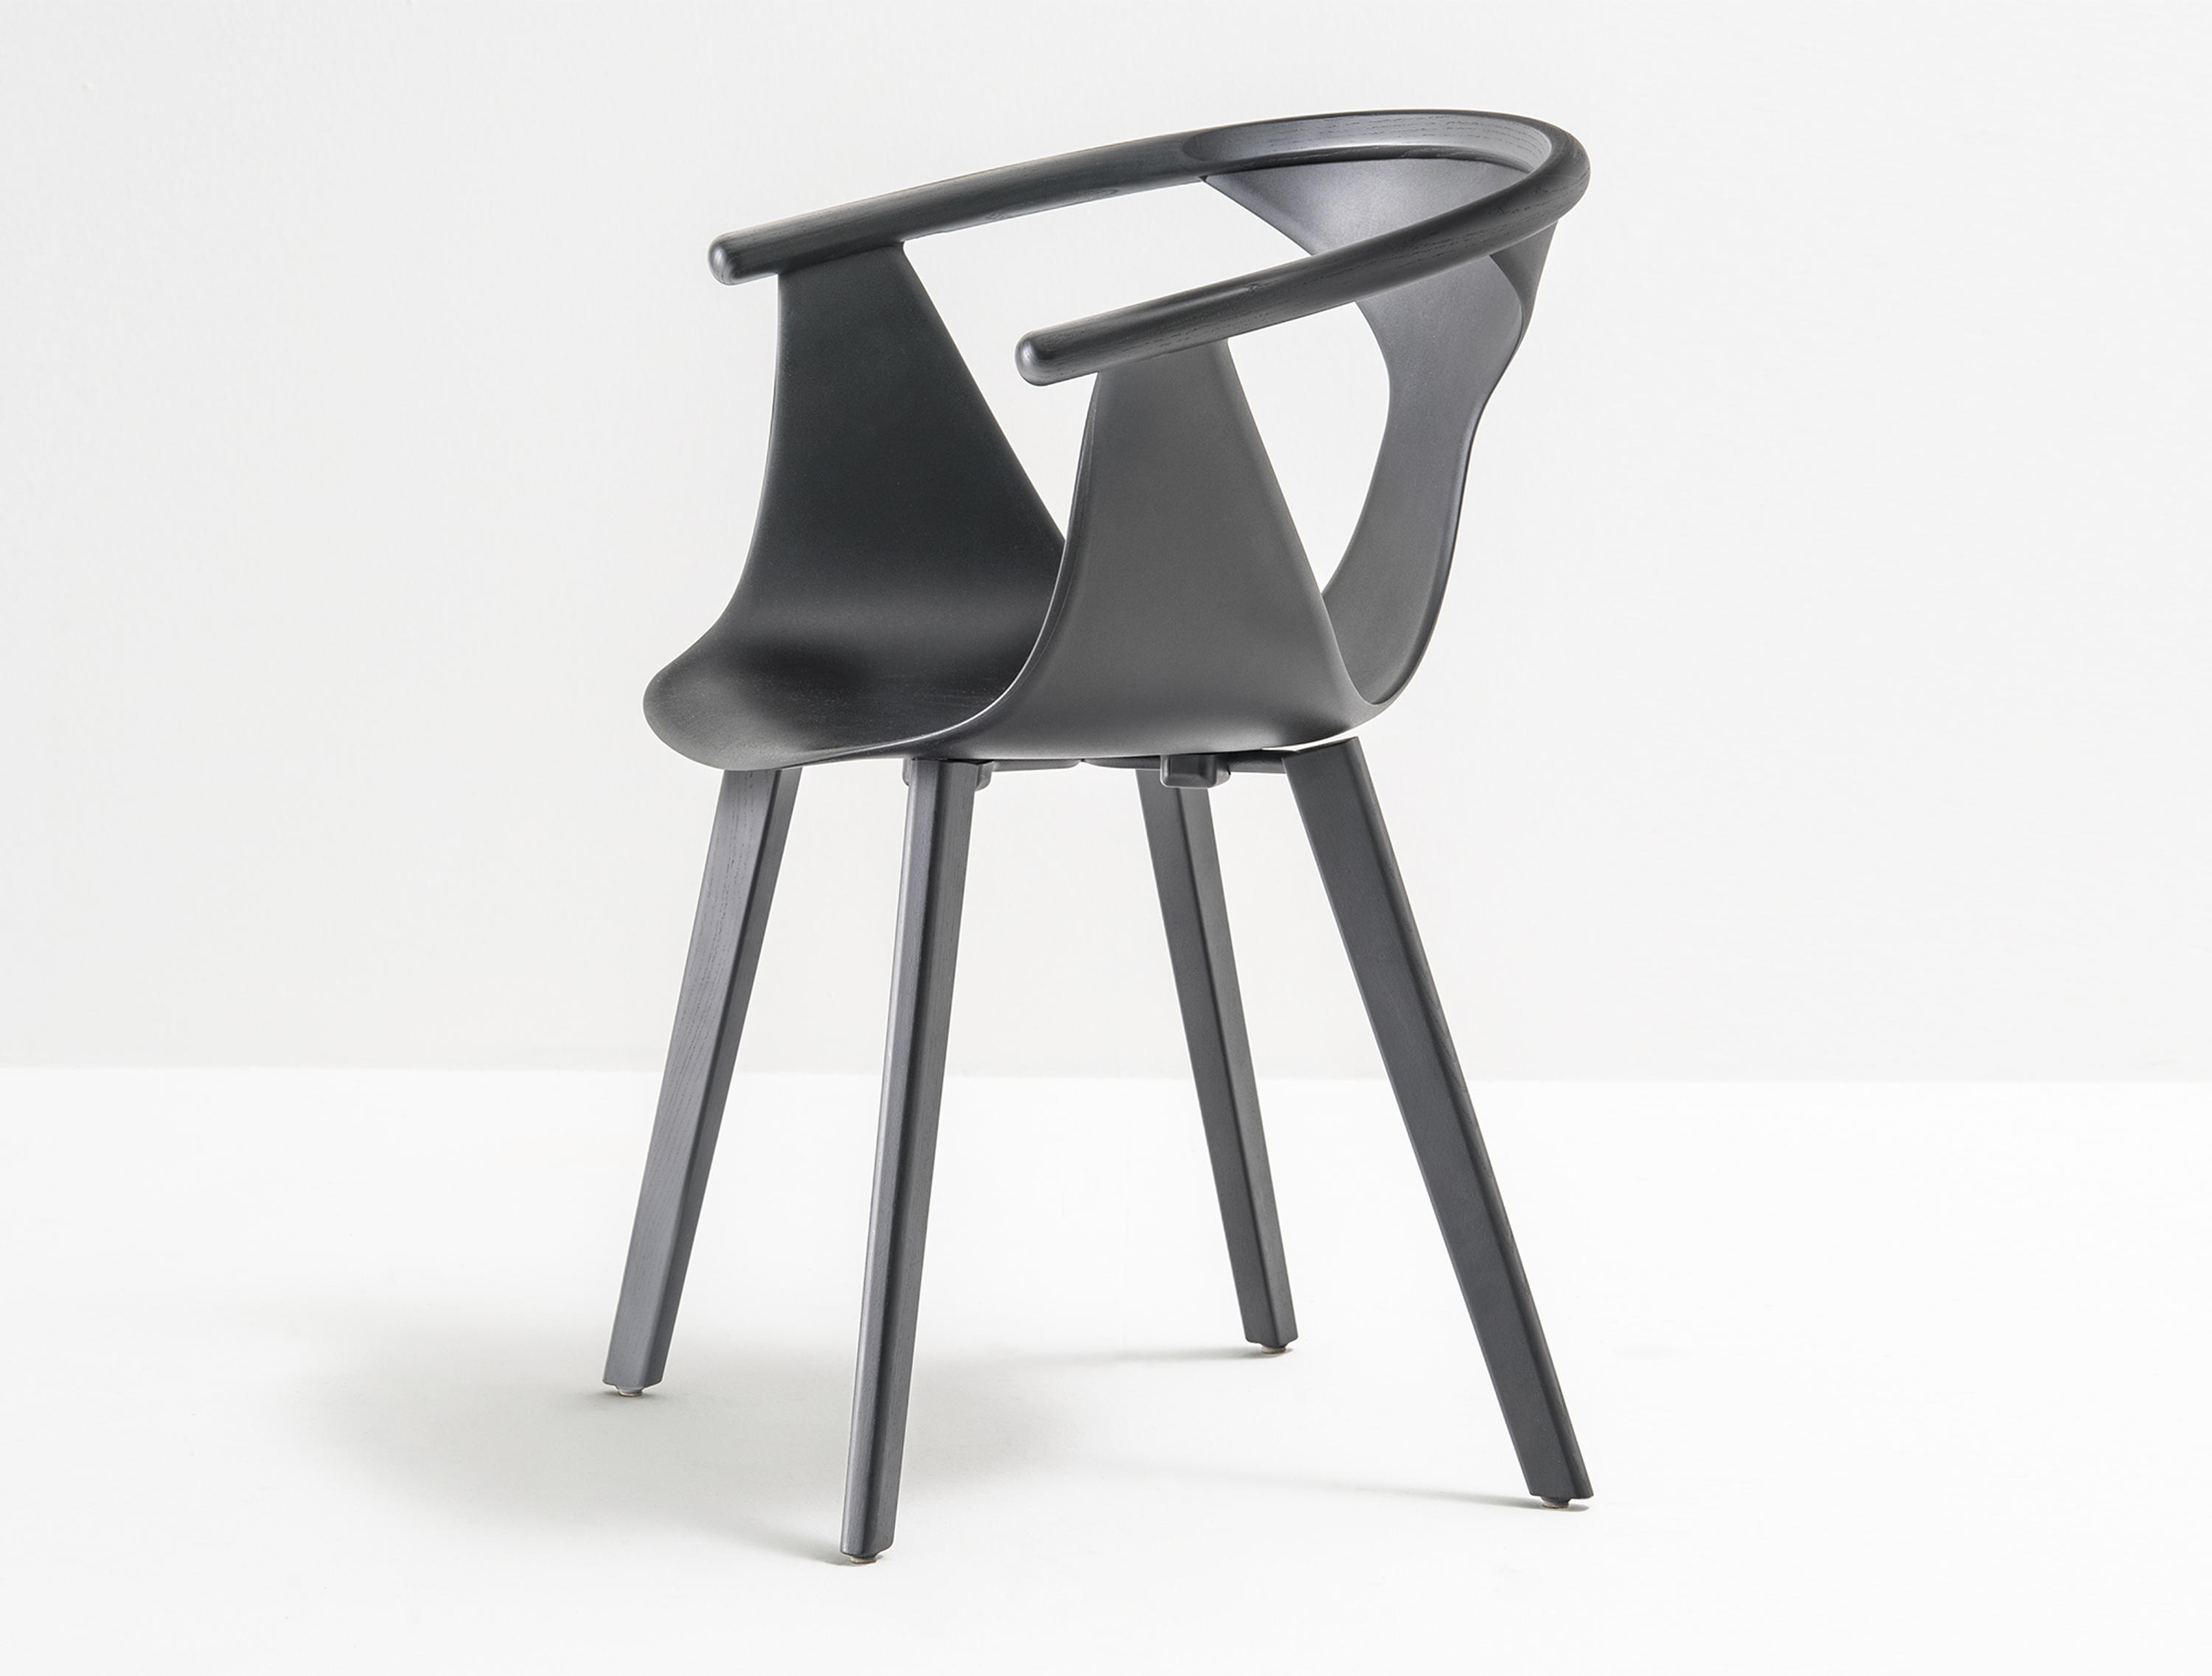 Merveilleux Fox Armchair 3725 By PEDRALI | Chairs ...